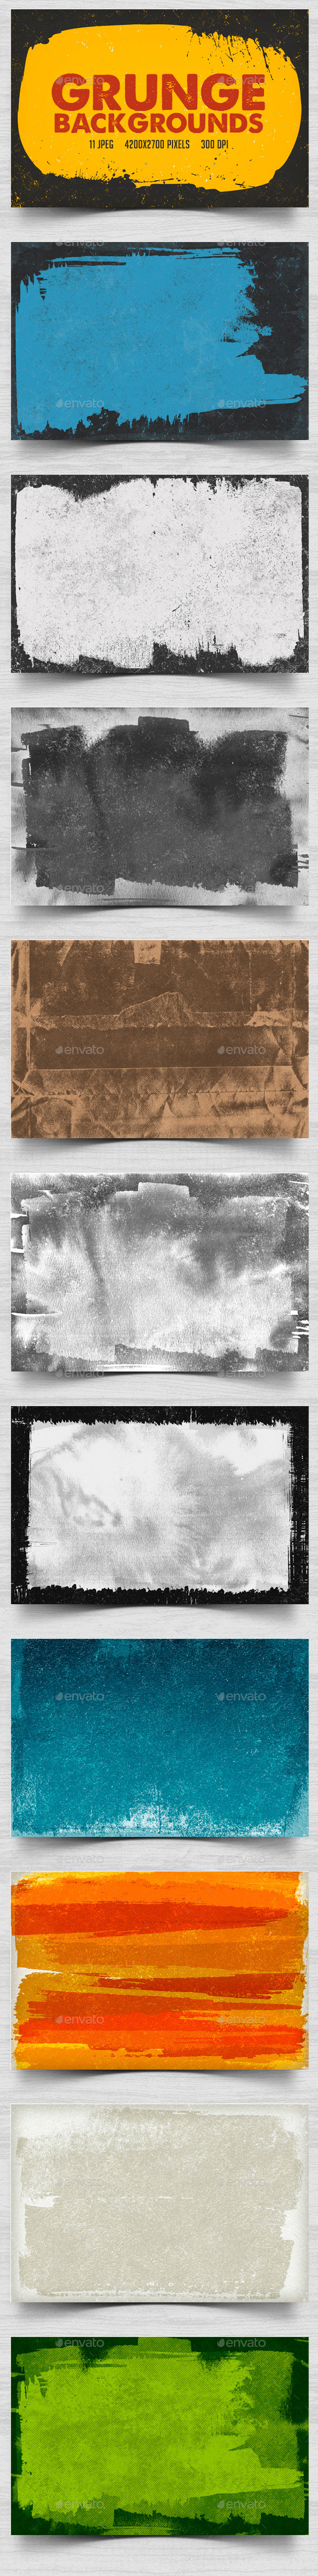 Grunge Backgrounds - Backgrounds Graphics